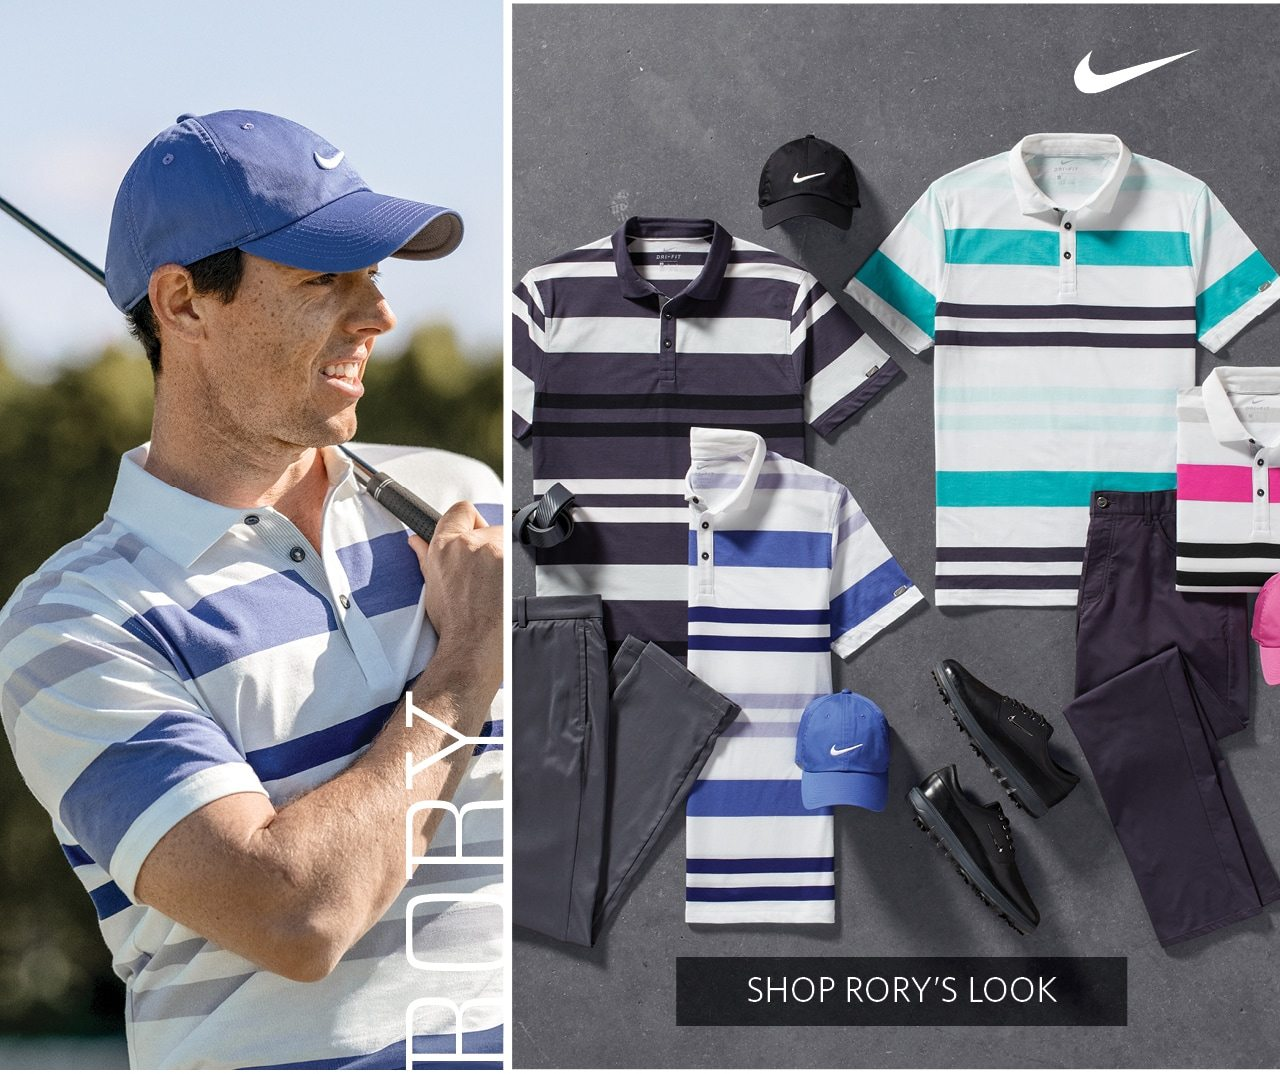 Shop Rory's Look.